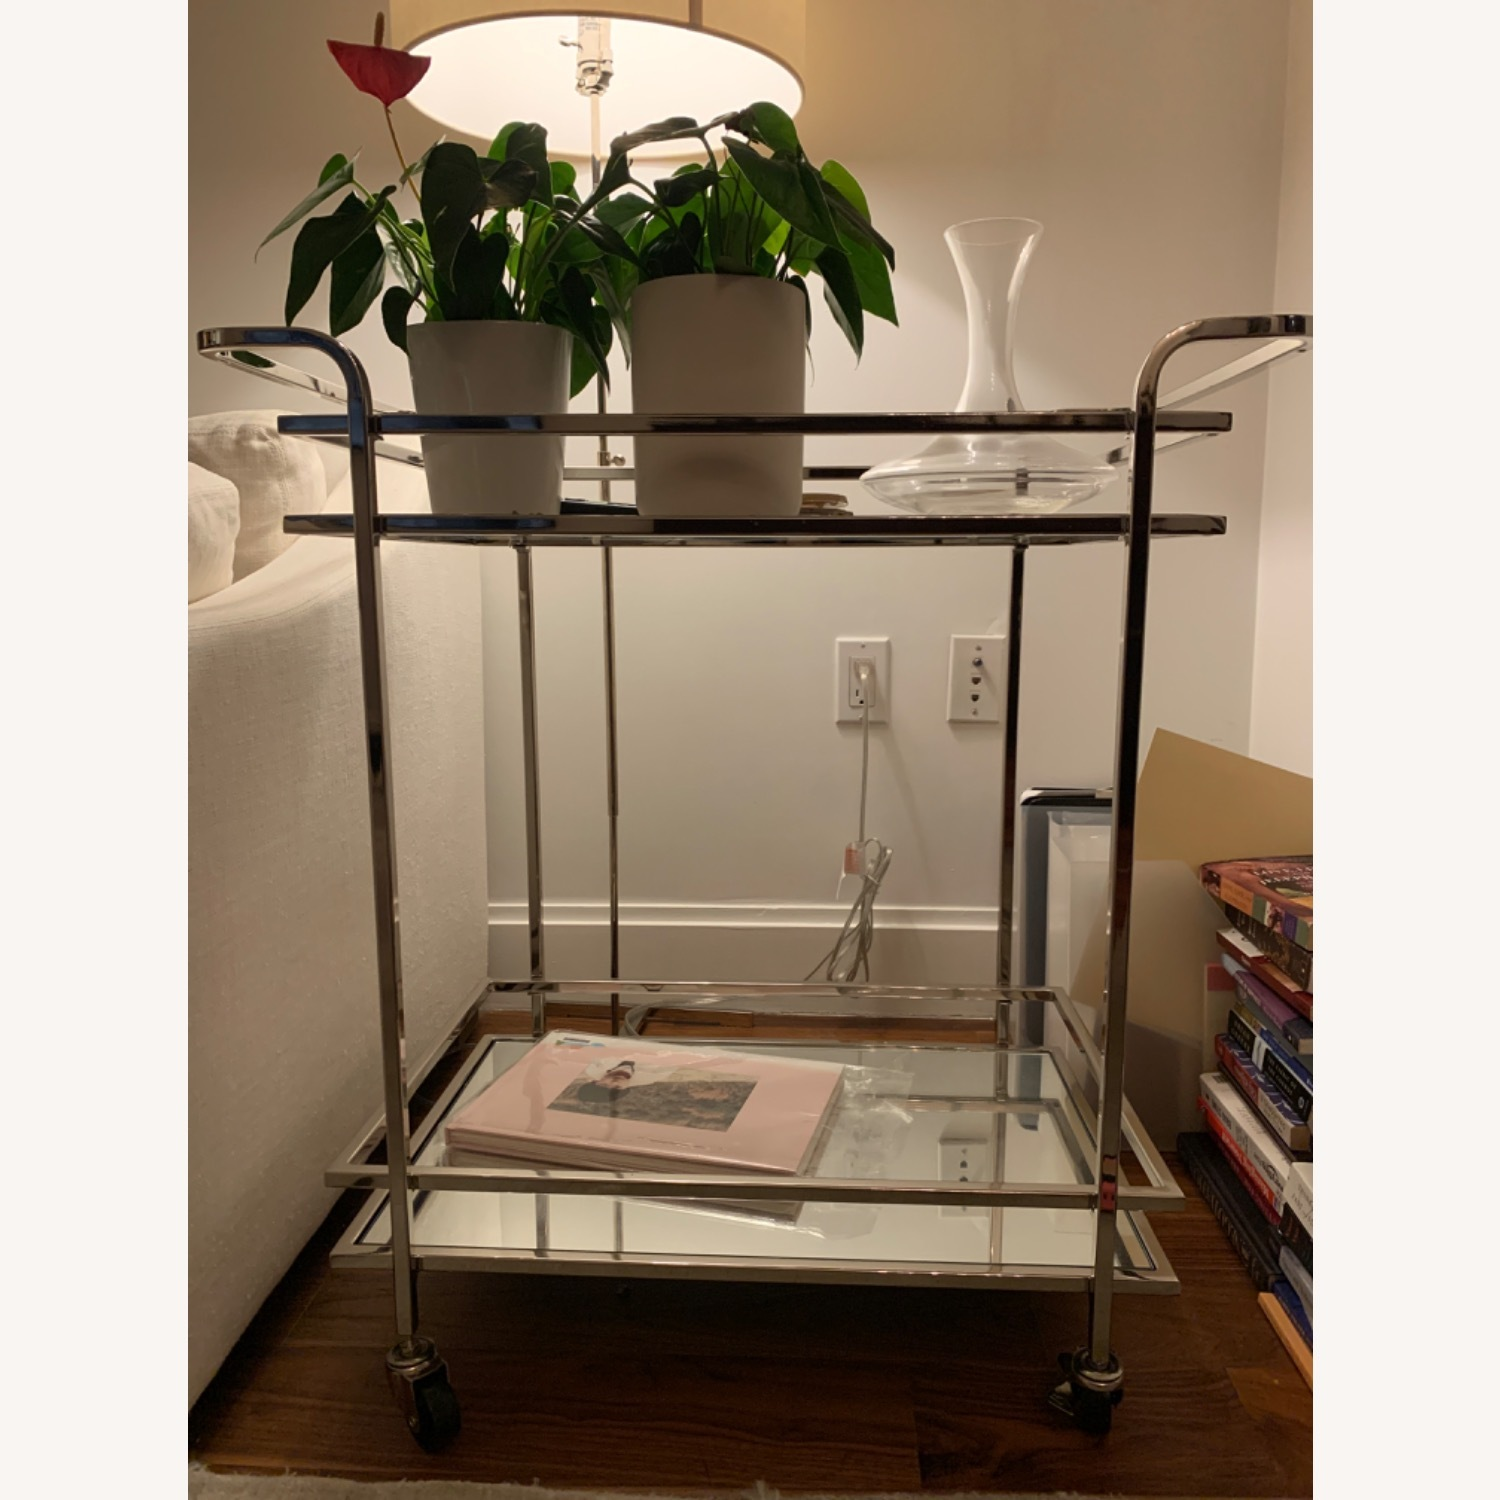 Wayfair Silver Rolling Mirrored Bar Cart - image-1